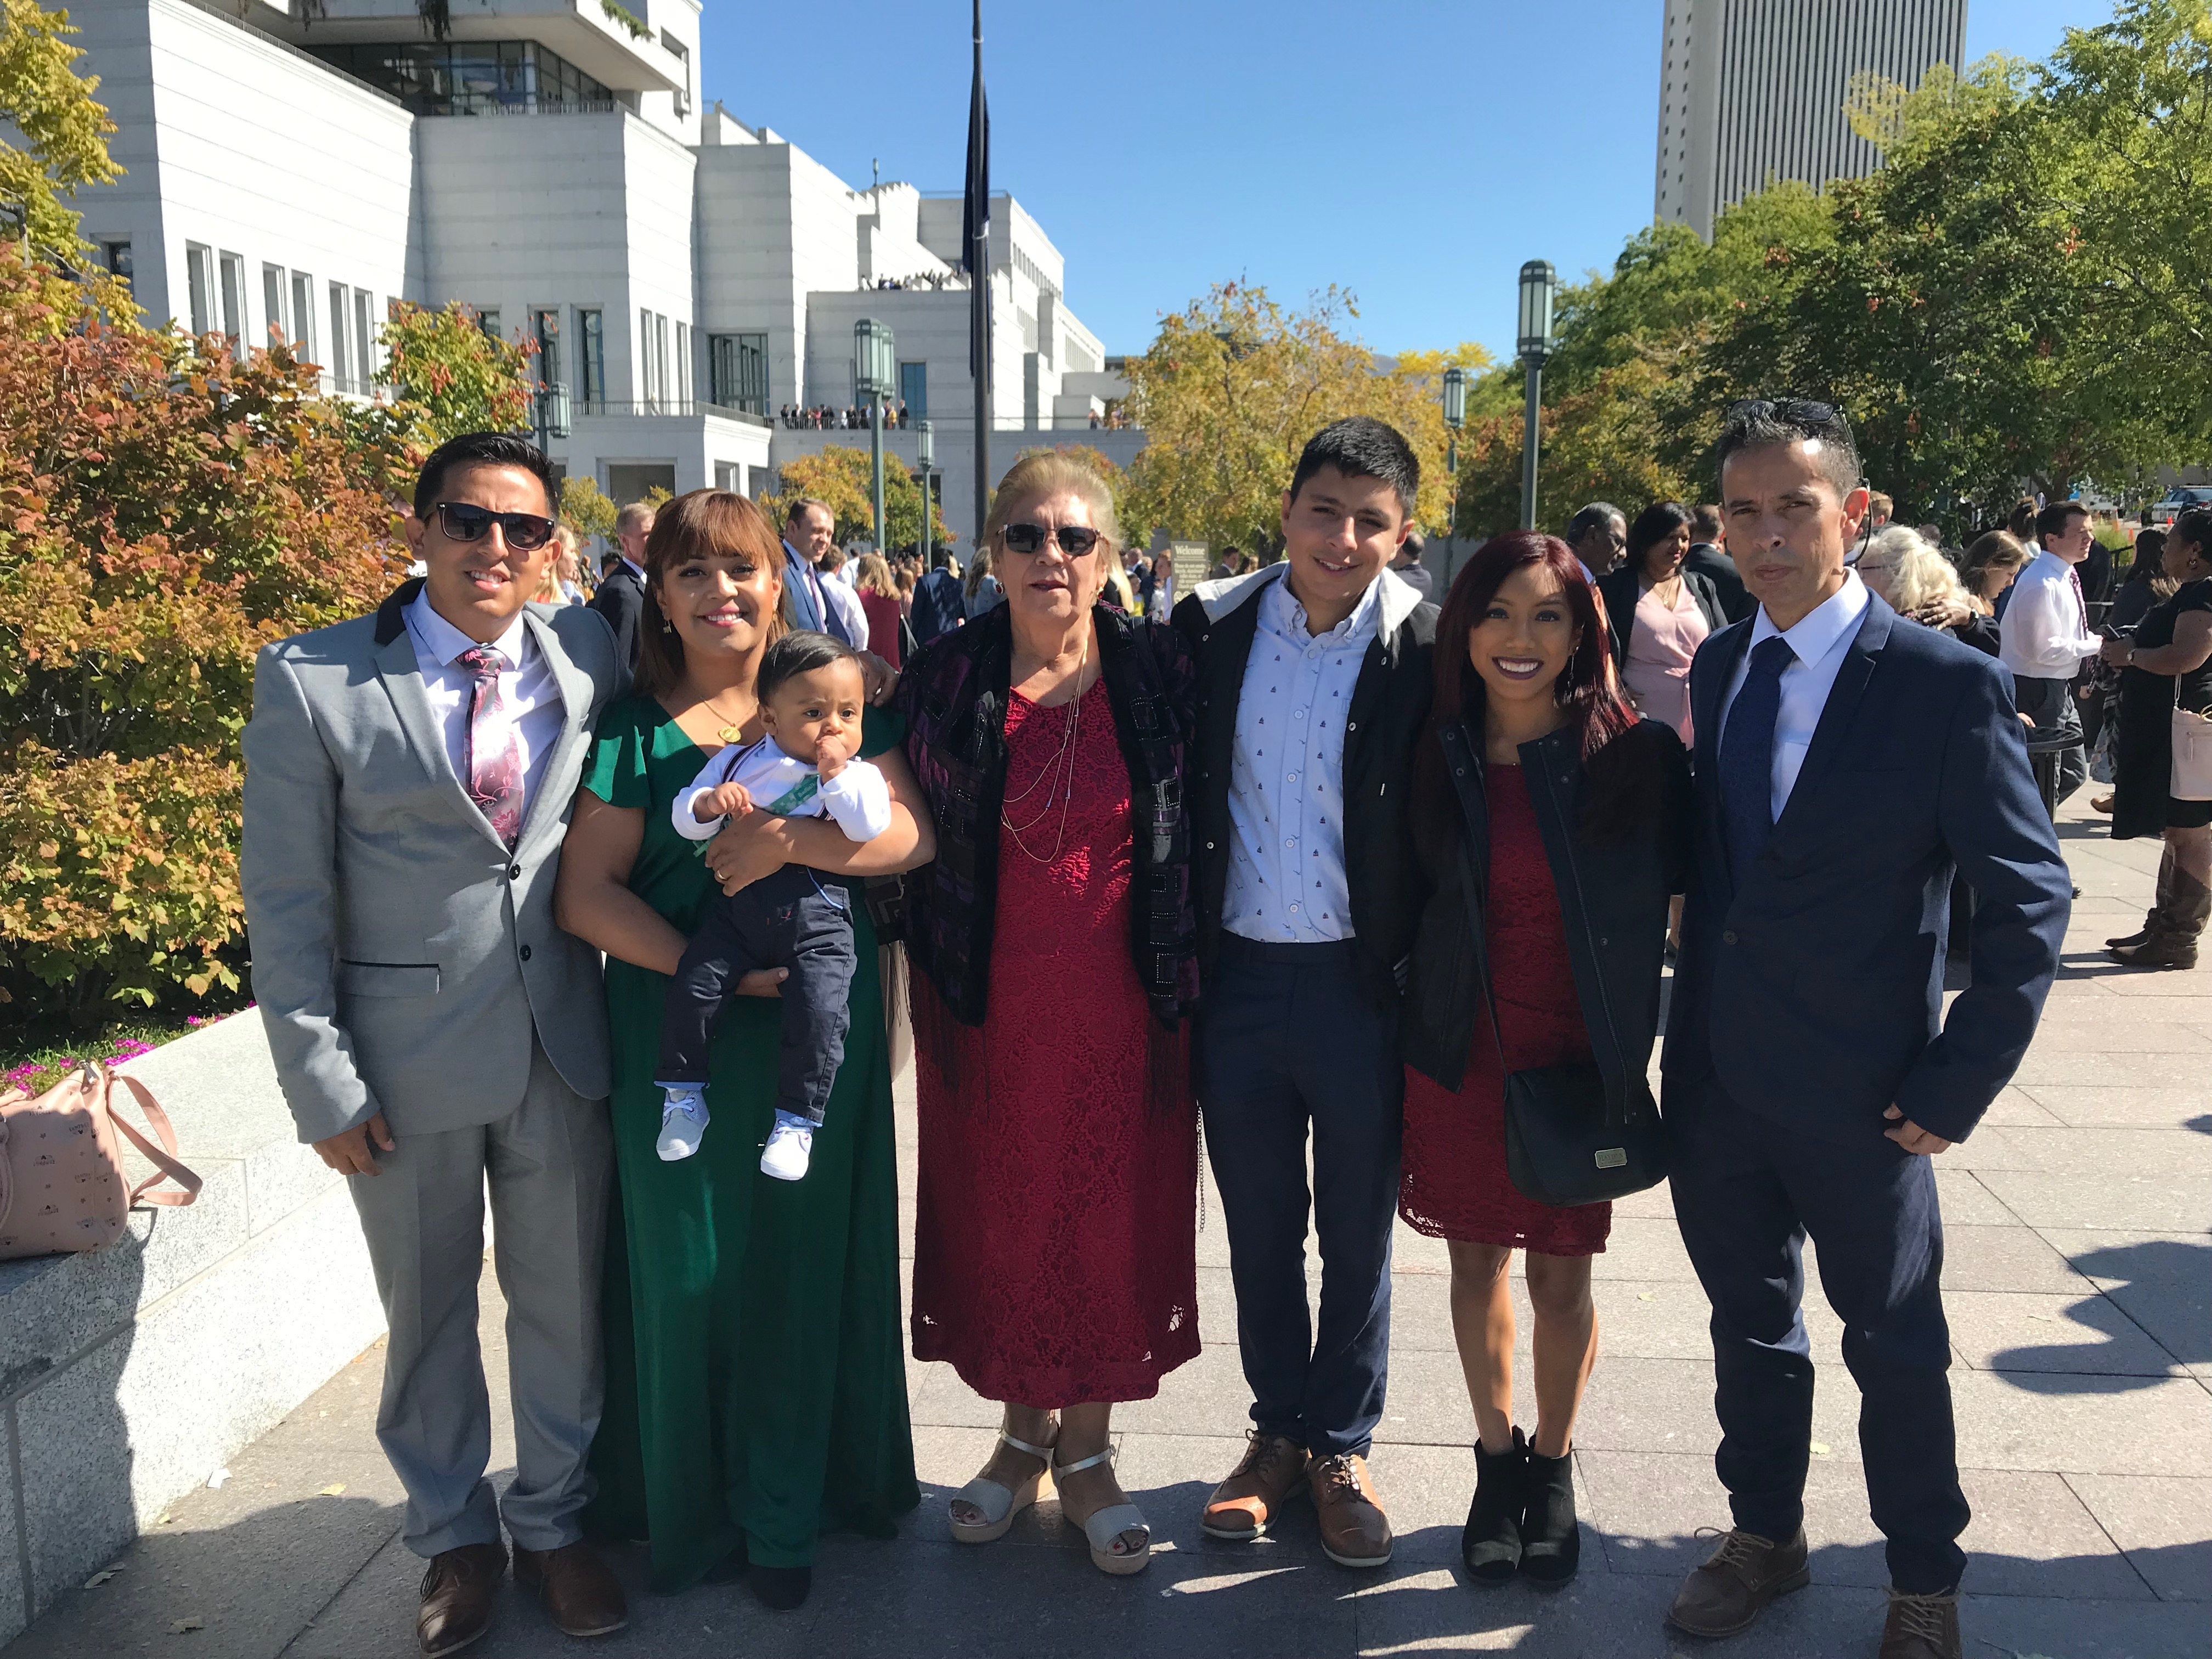 Angie Ibarra, second from left, is pictured with her husband, left, and other family members at general conference on Oct. 6, 2019. Ibarra and her family are from Guanajuato, Mexico.